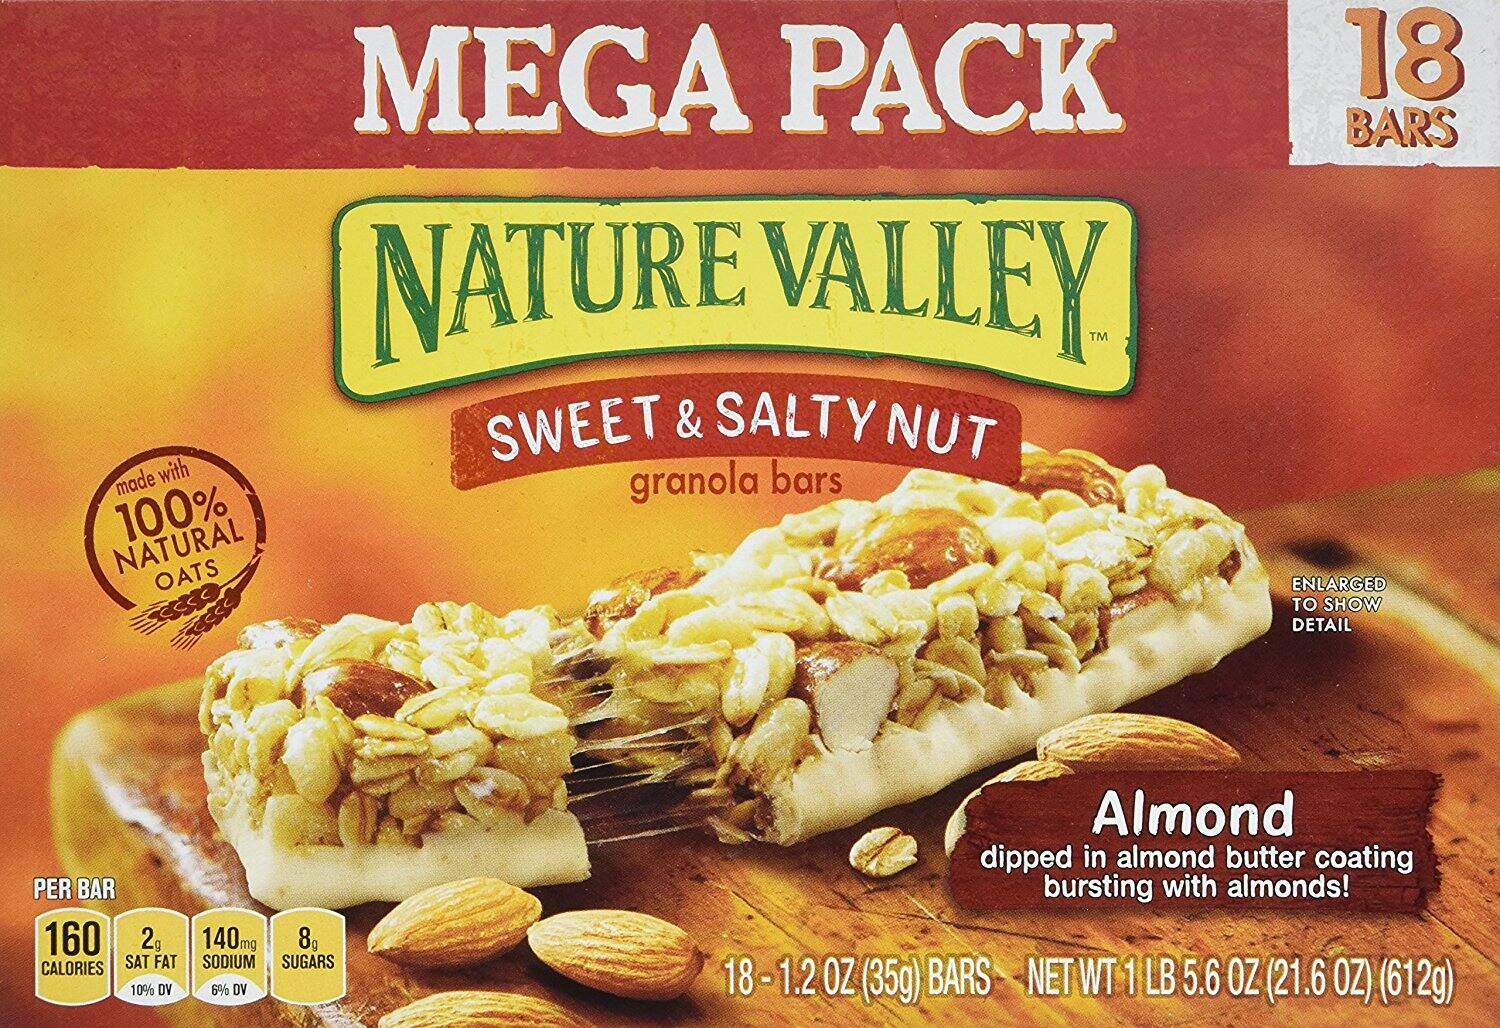 Are Nature Valley Almond Bars Good For You